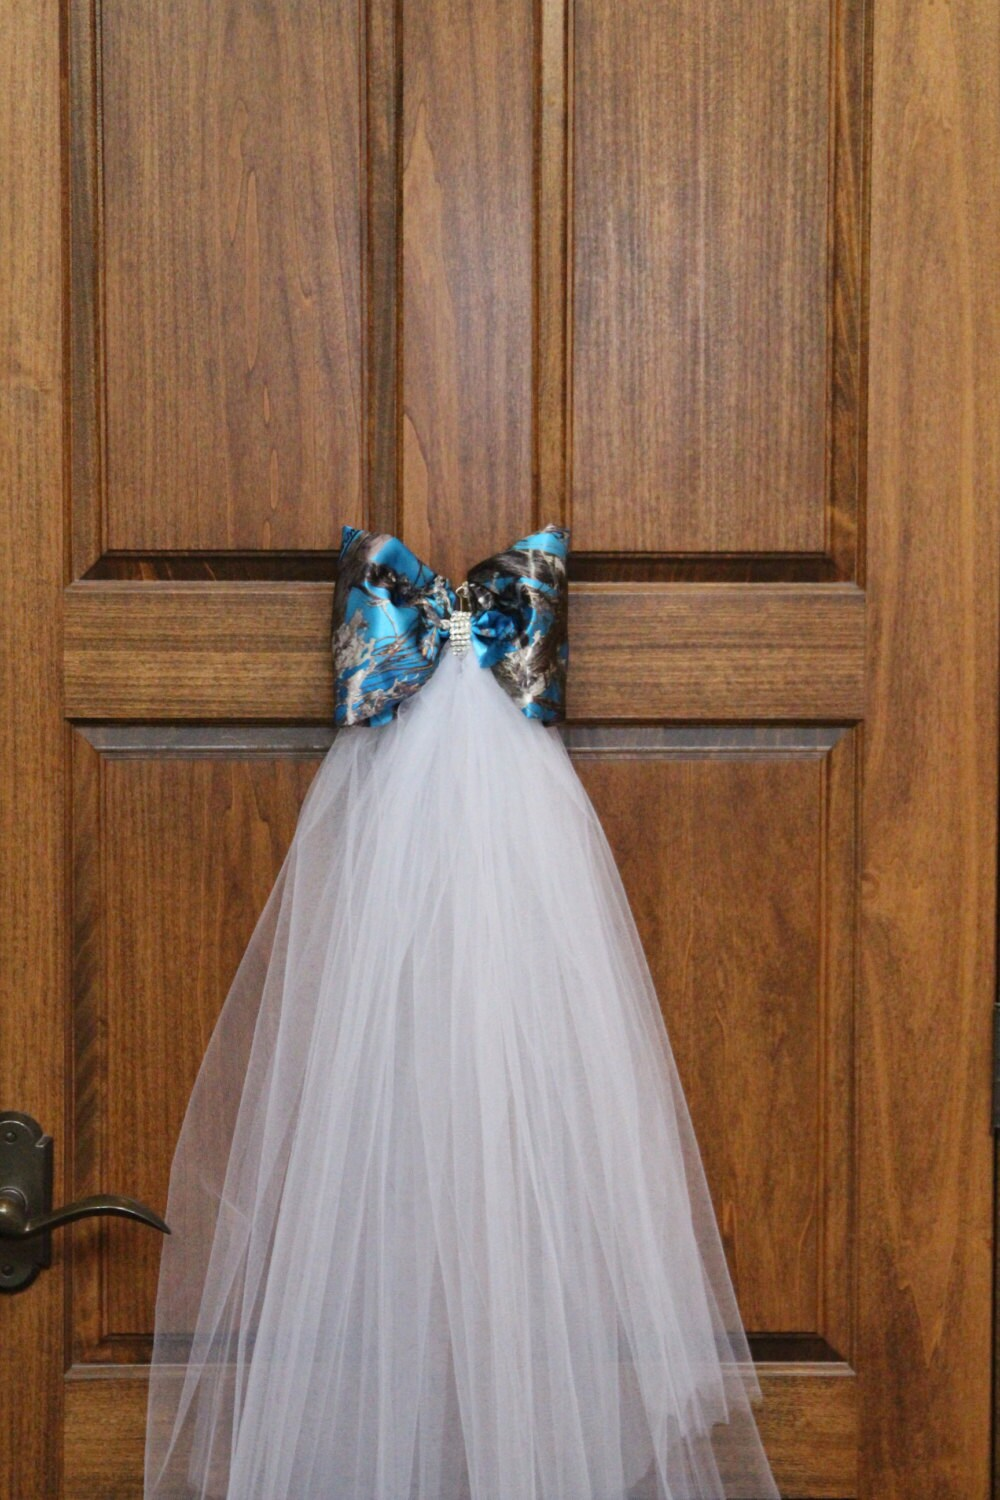 Blue Camouflage Party Decorations Camouflage Wedding Decorations Image Gallery Of Lovely Decoration